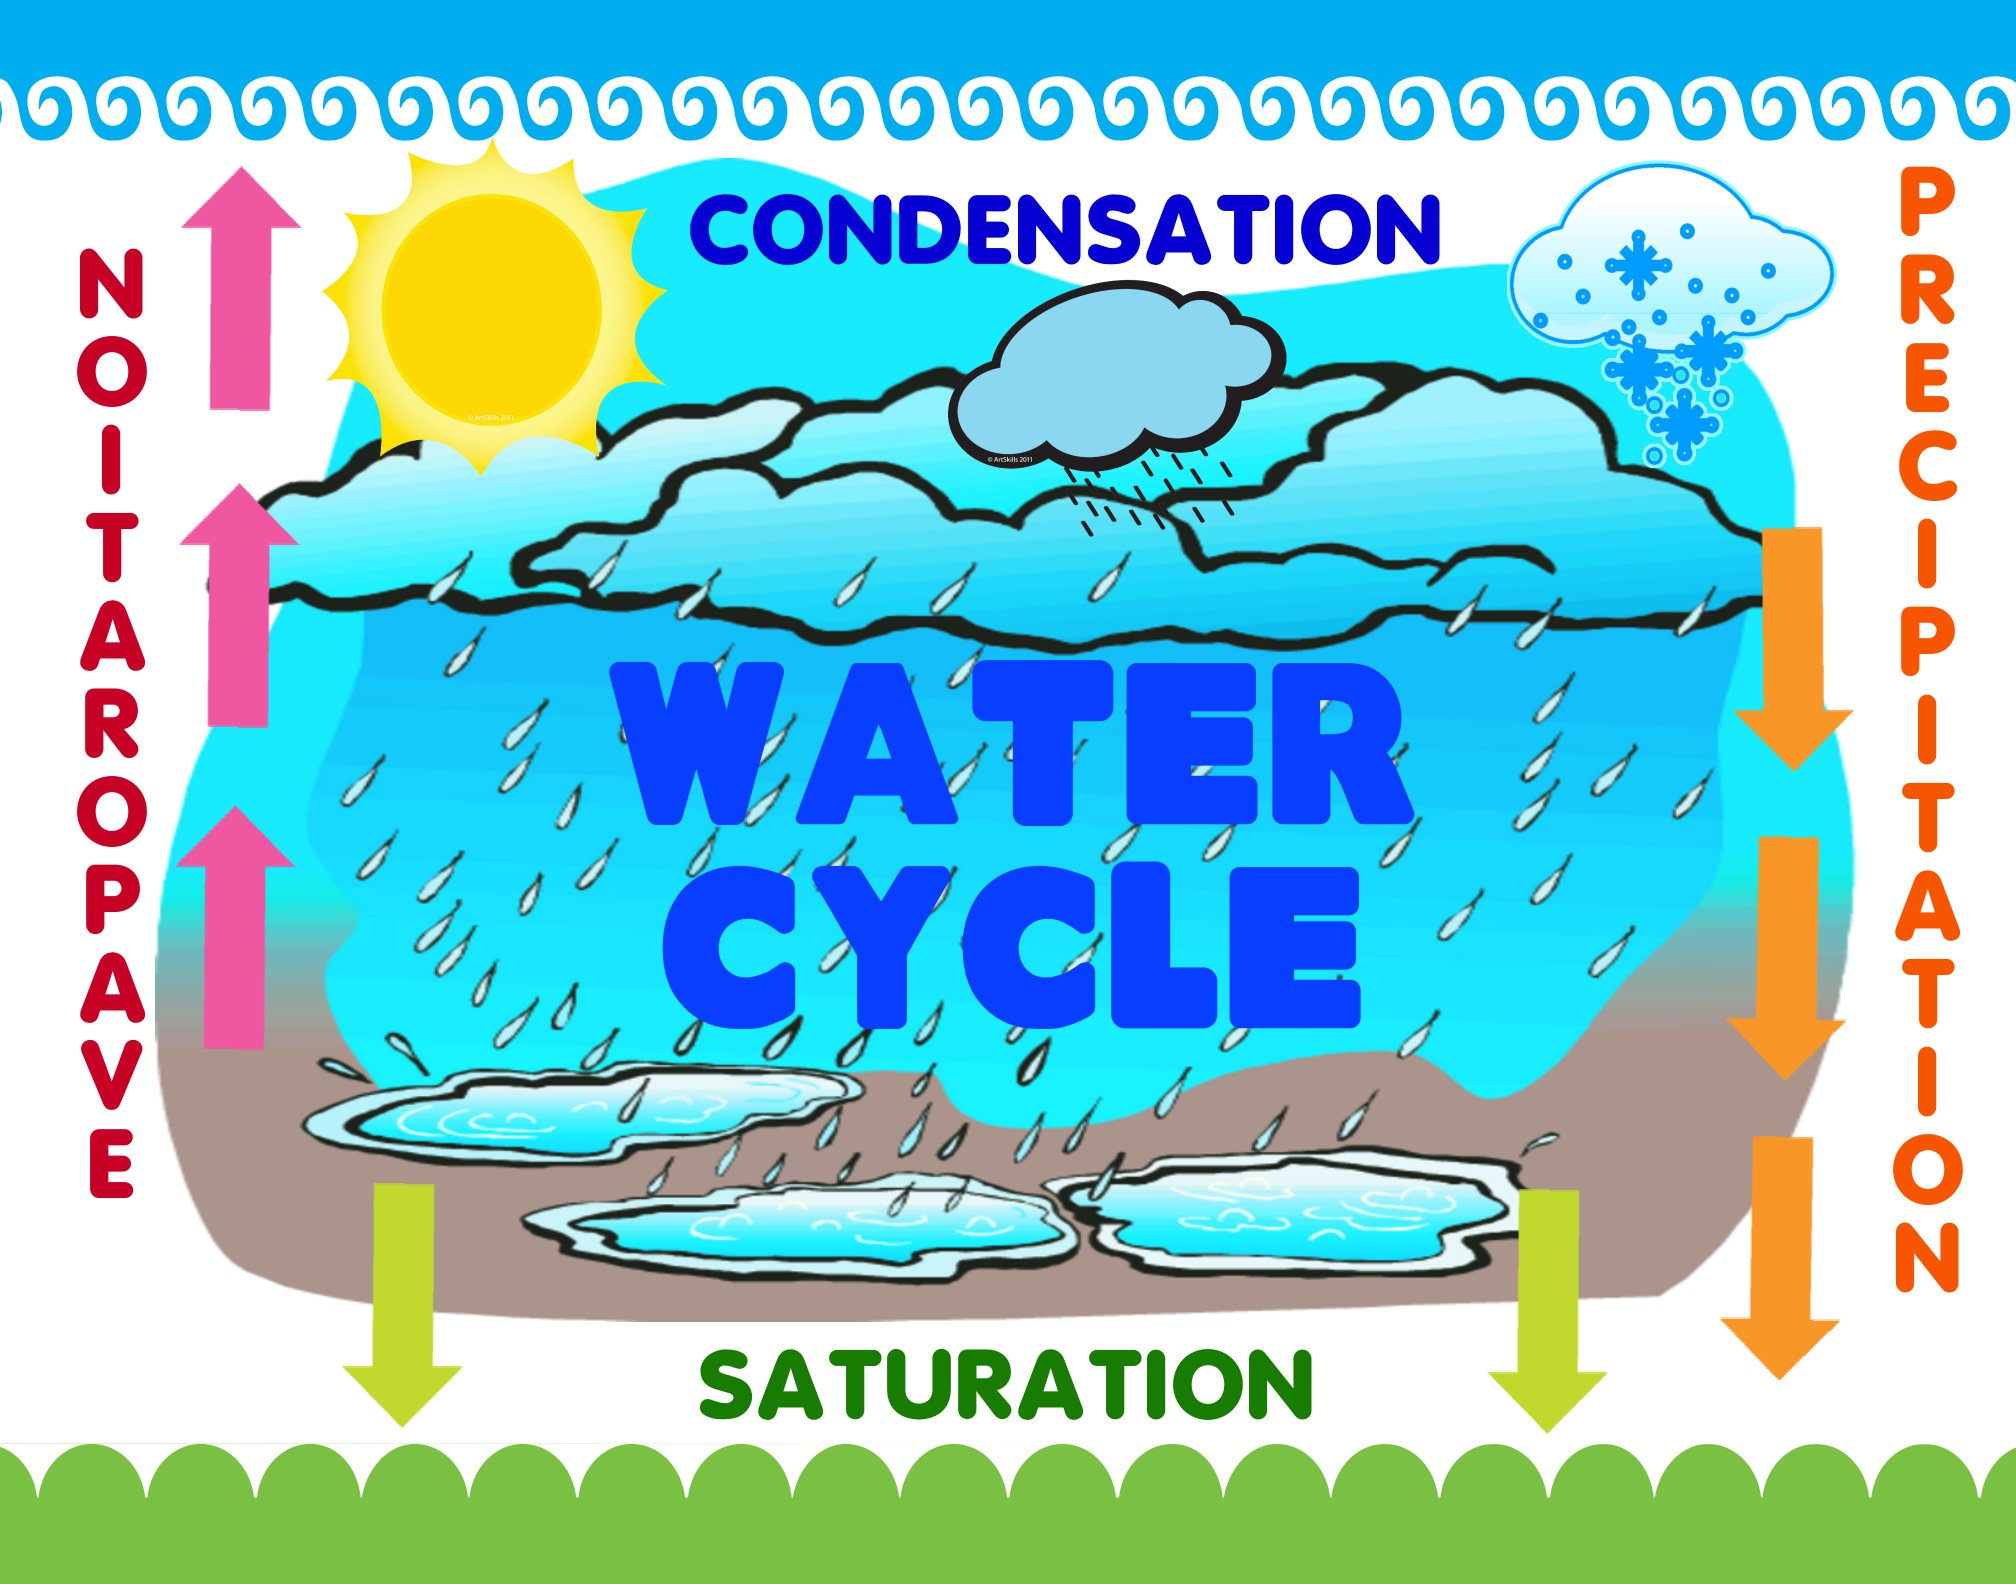 Water cycle clipart royalty free download Clipart of water cycle - ClipartFest royalty free download